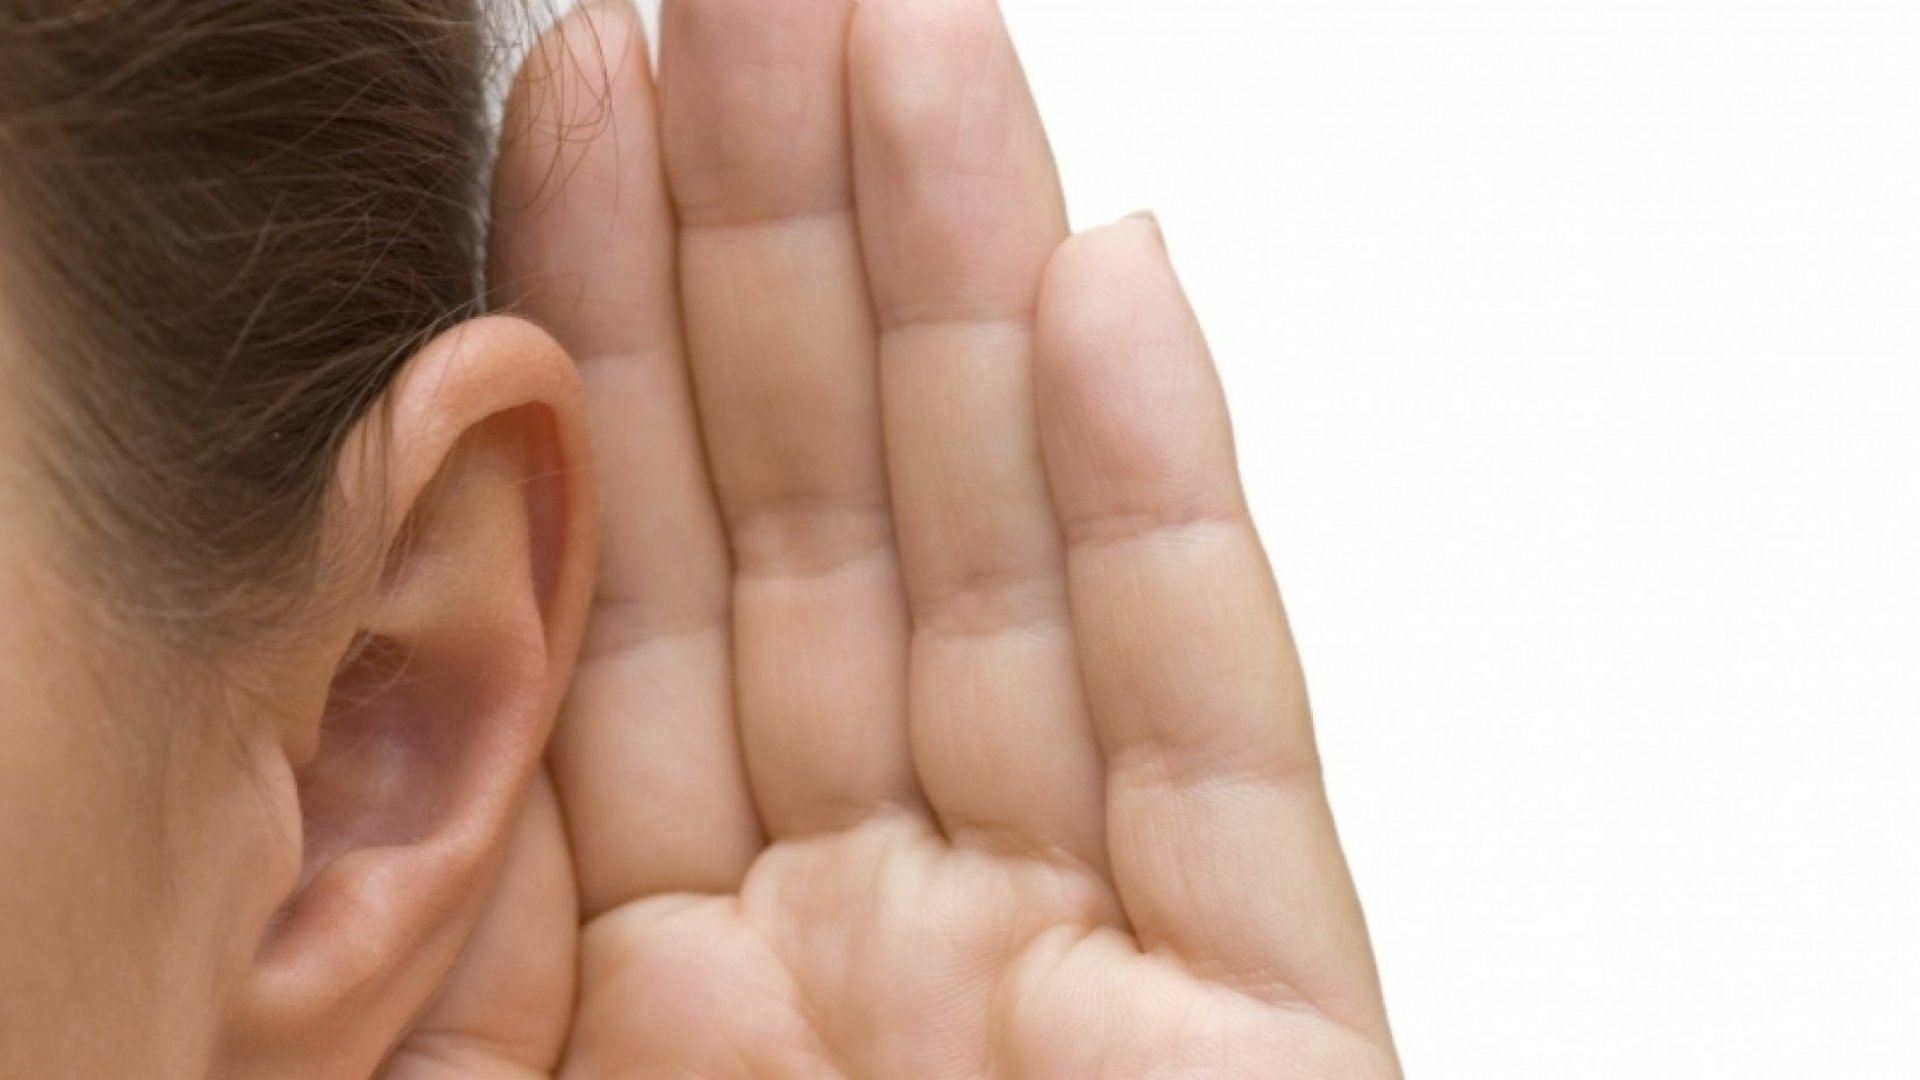 The 5 Awesome Words Your Business Needs to Hear